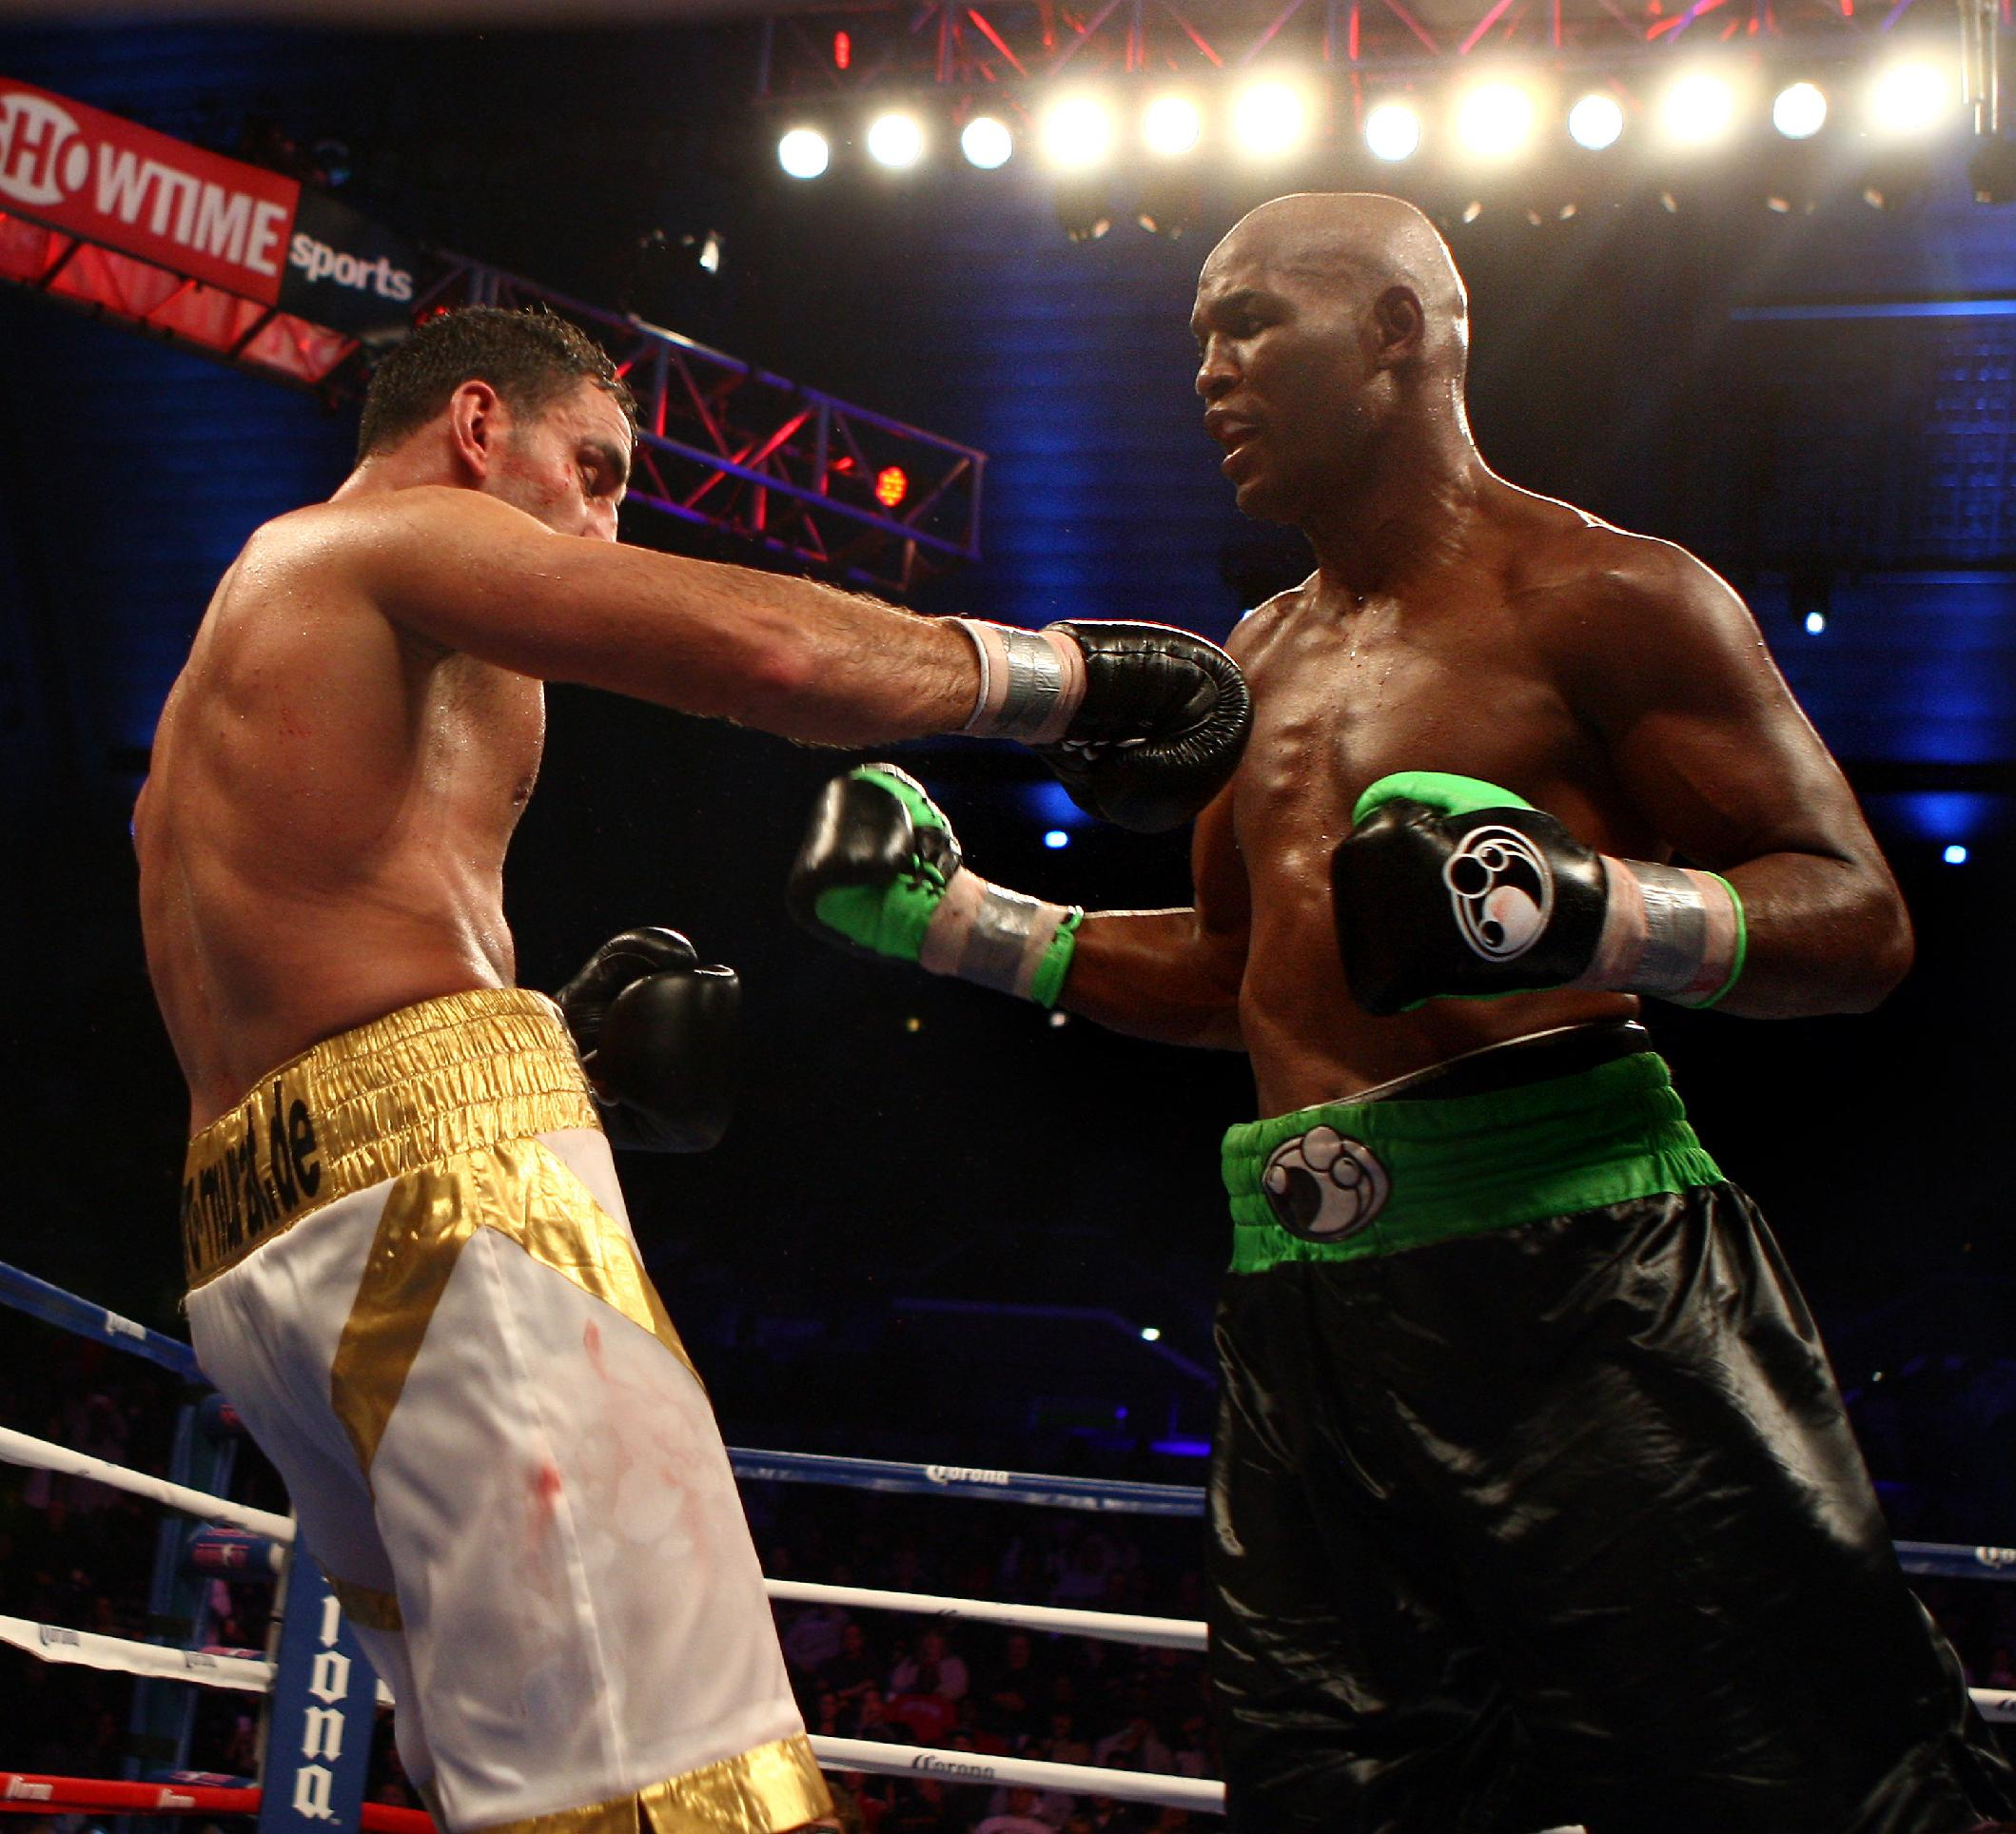 Bernard Hopkins, right, of Philadelphia, PA goes after Karo Murat of Germany during the 12th round of IBF Light Heavyweight Title in Atlantic City, N.J. on Saturday, Oct. 26, 2013. Hopkins won by unanimous decision after 12 rounds